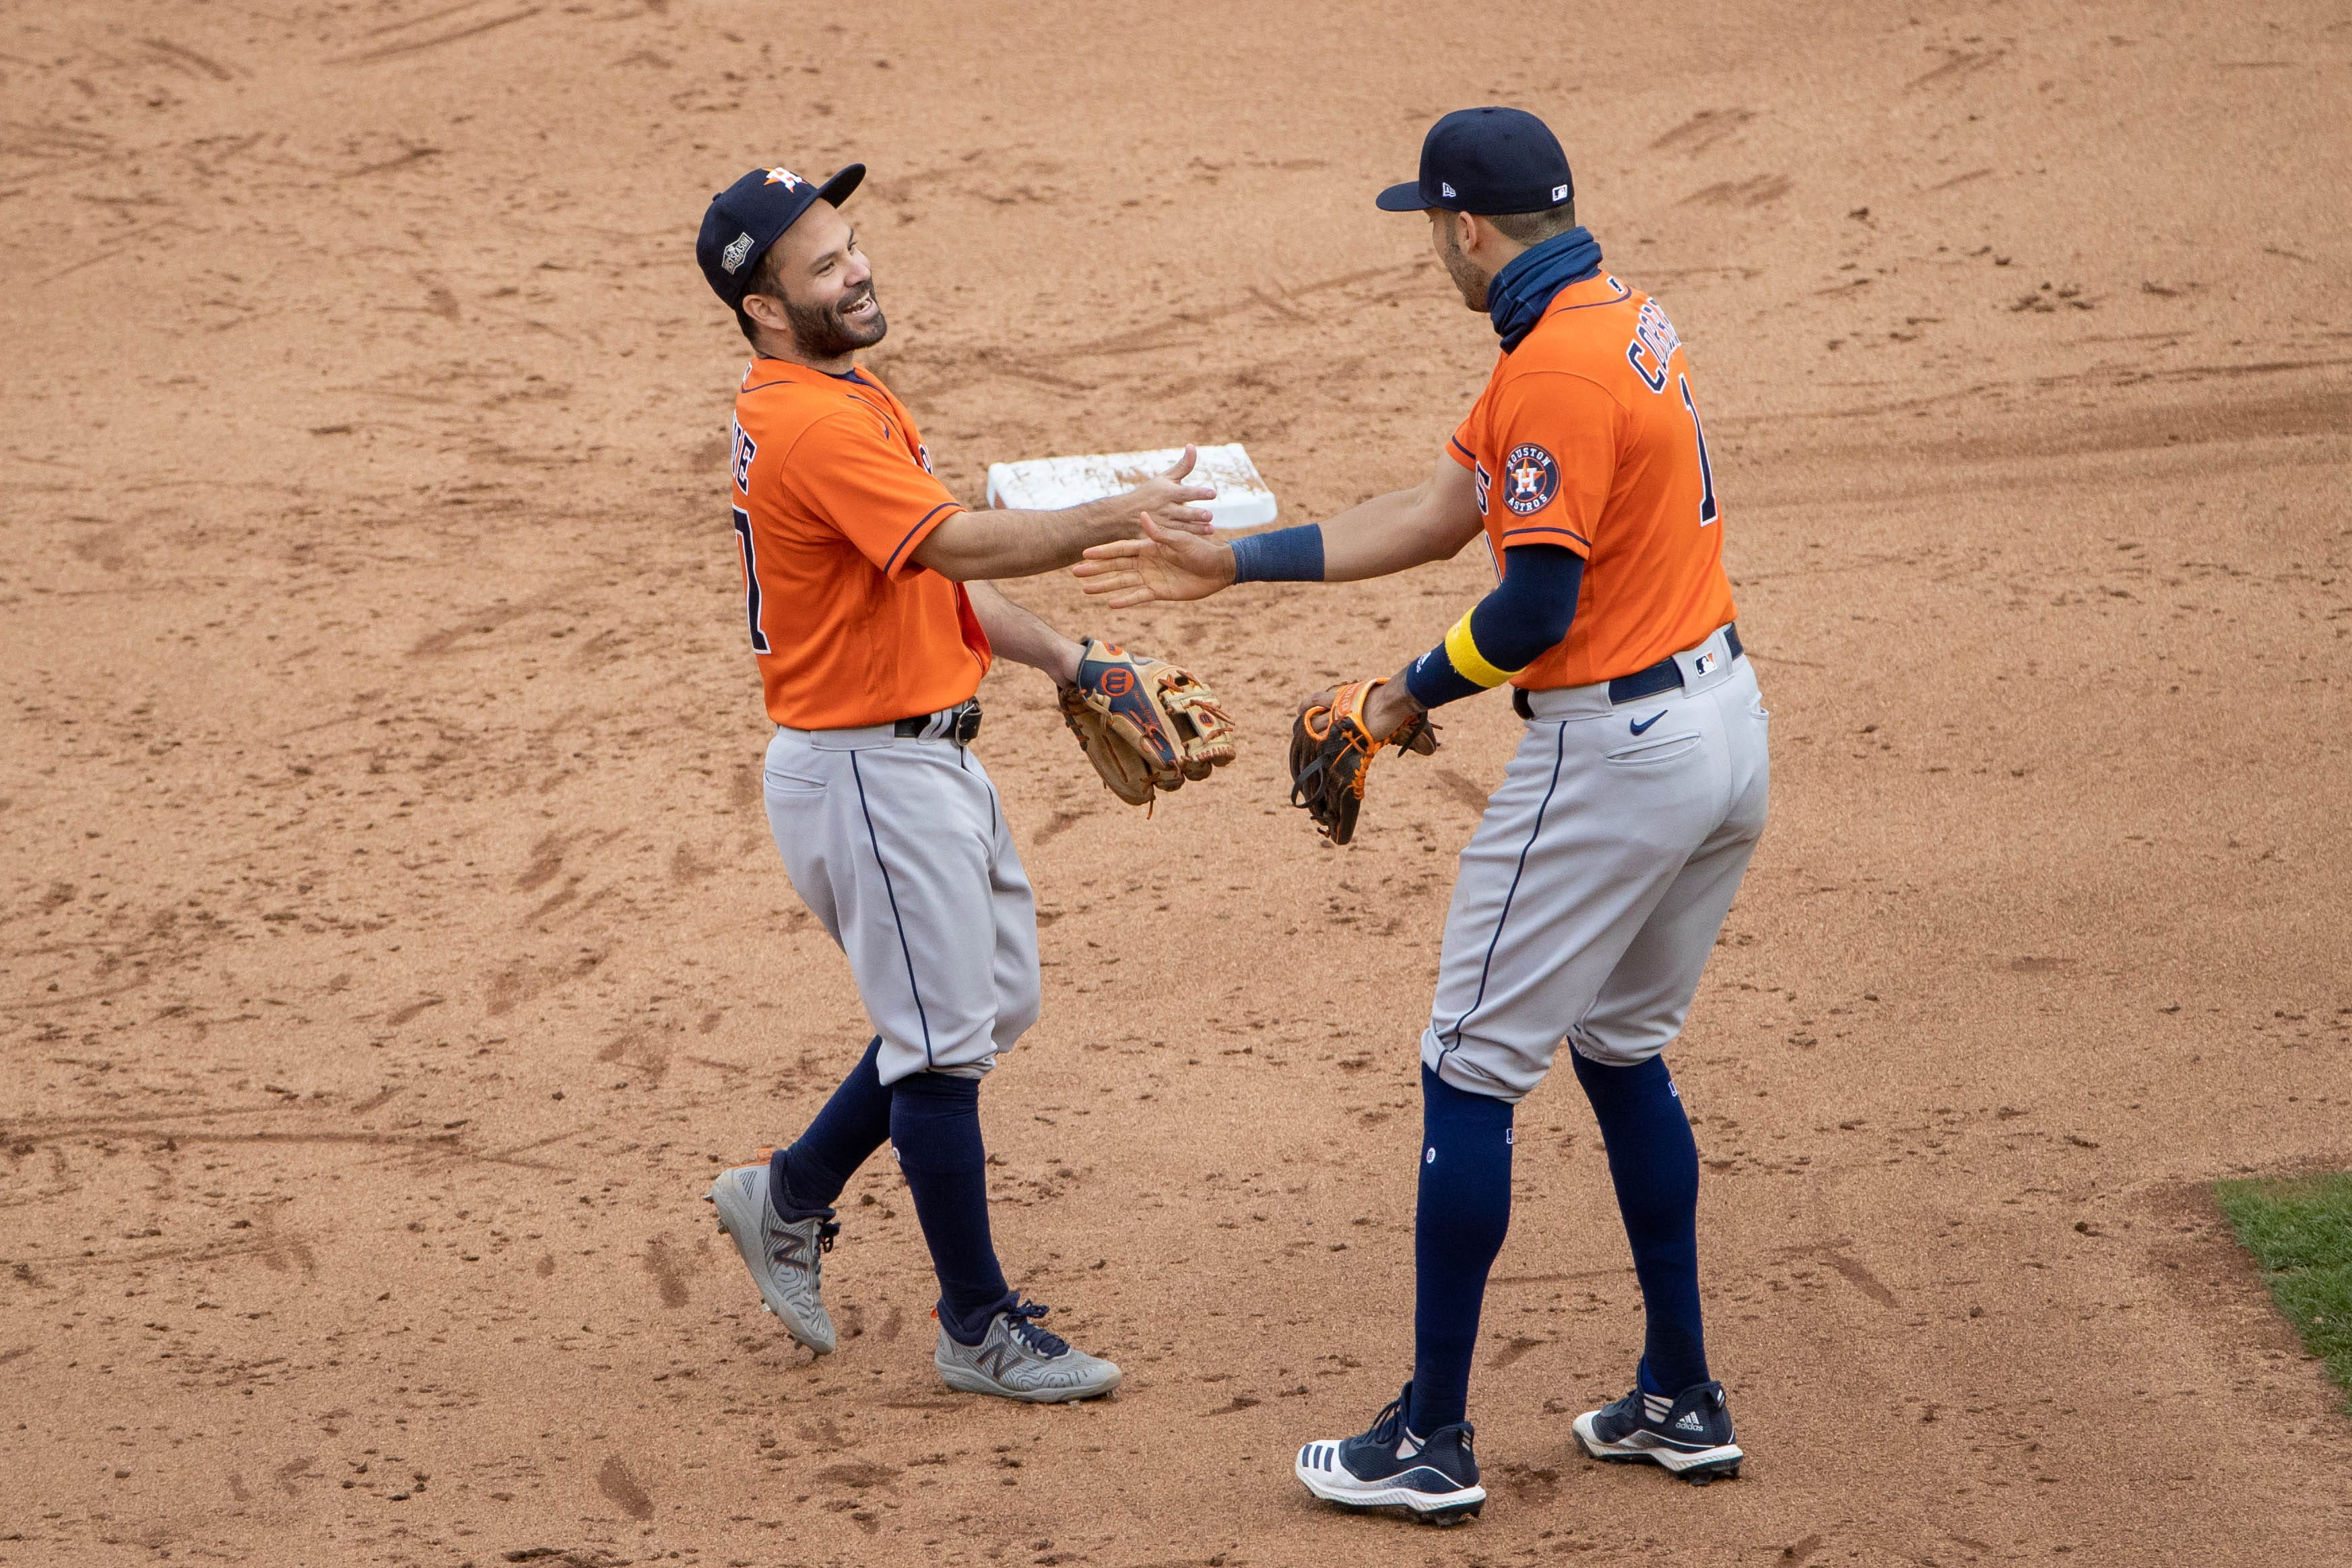 Haters gonna wait: Astros are back and getting 'loud' after beating Twins in Game 1